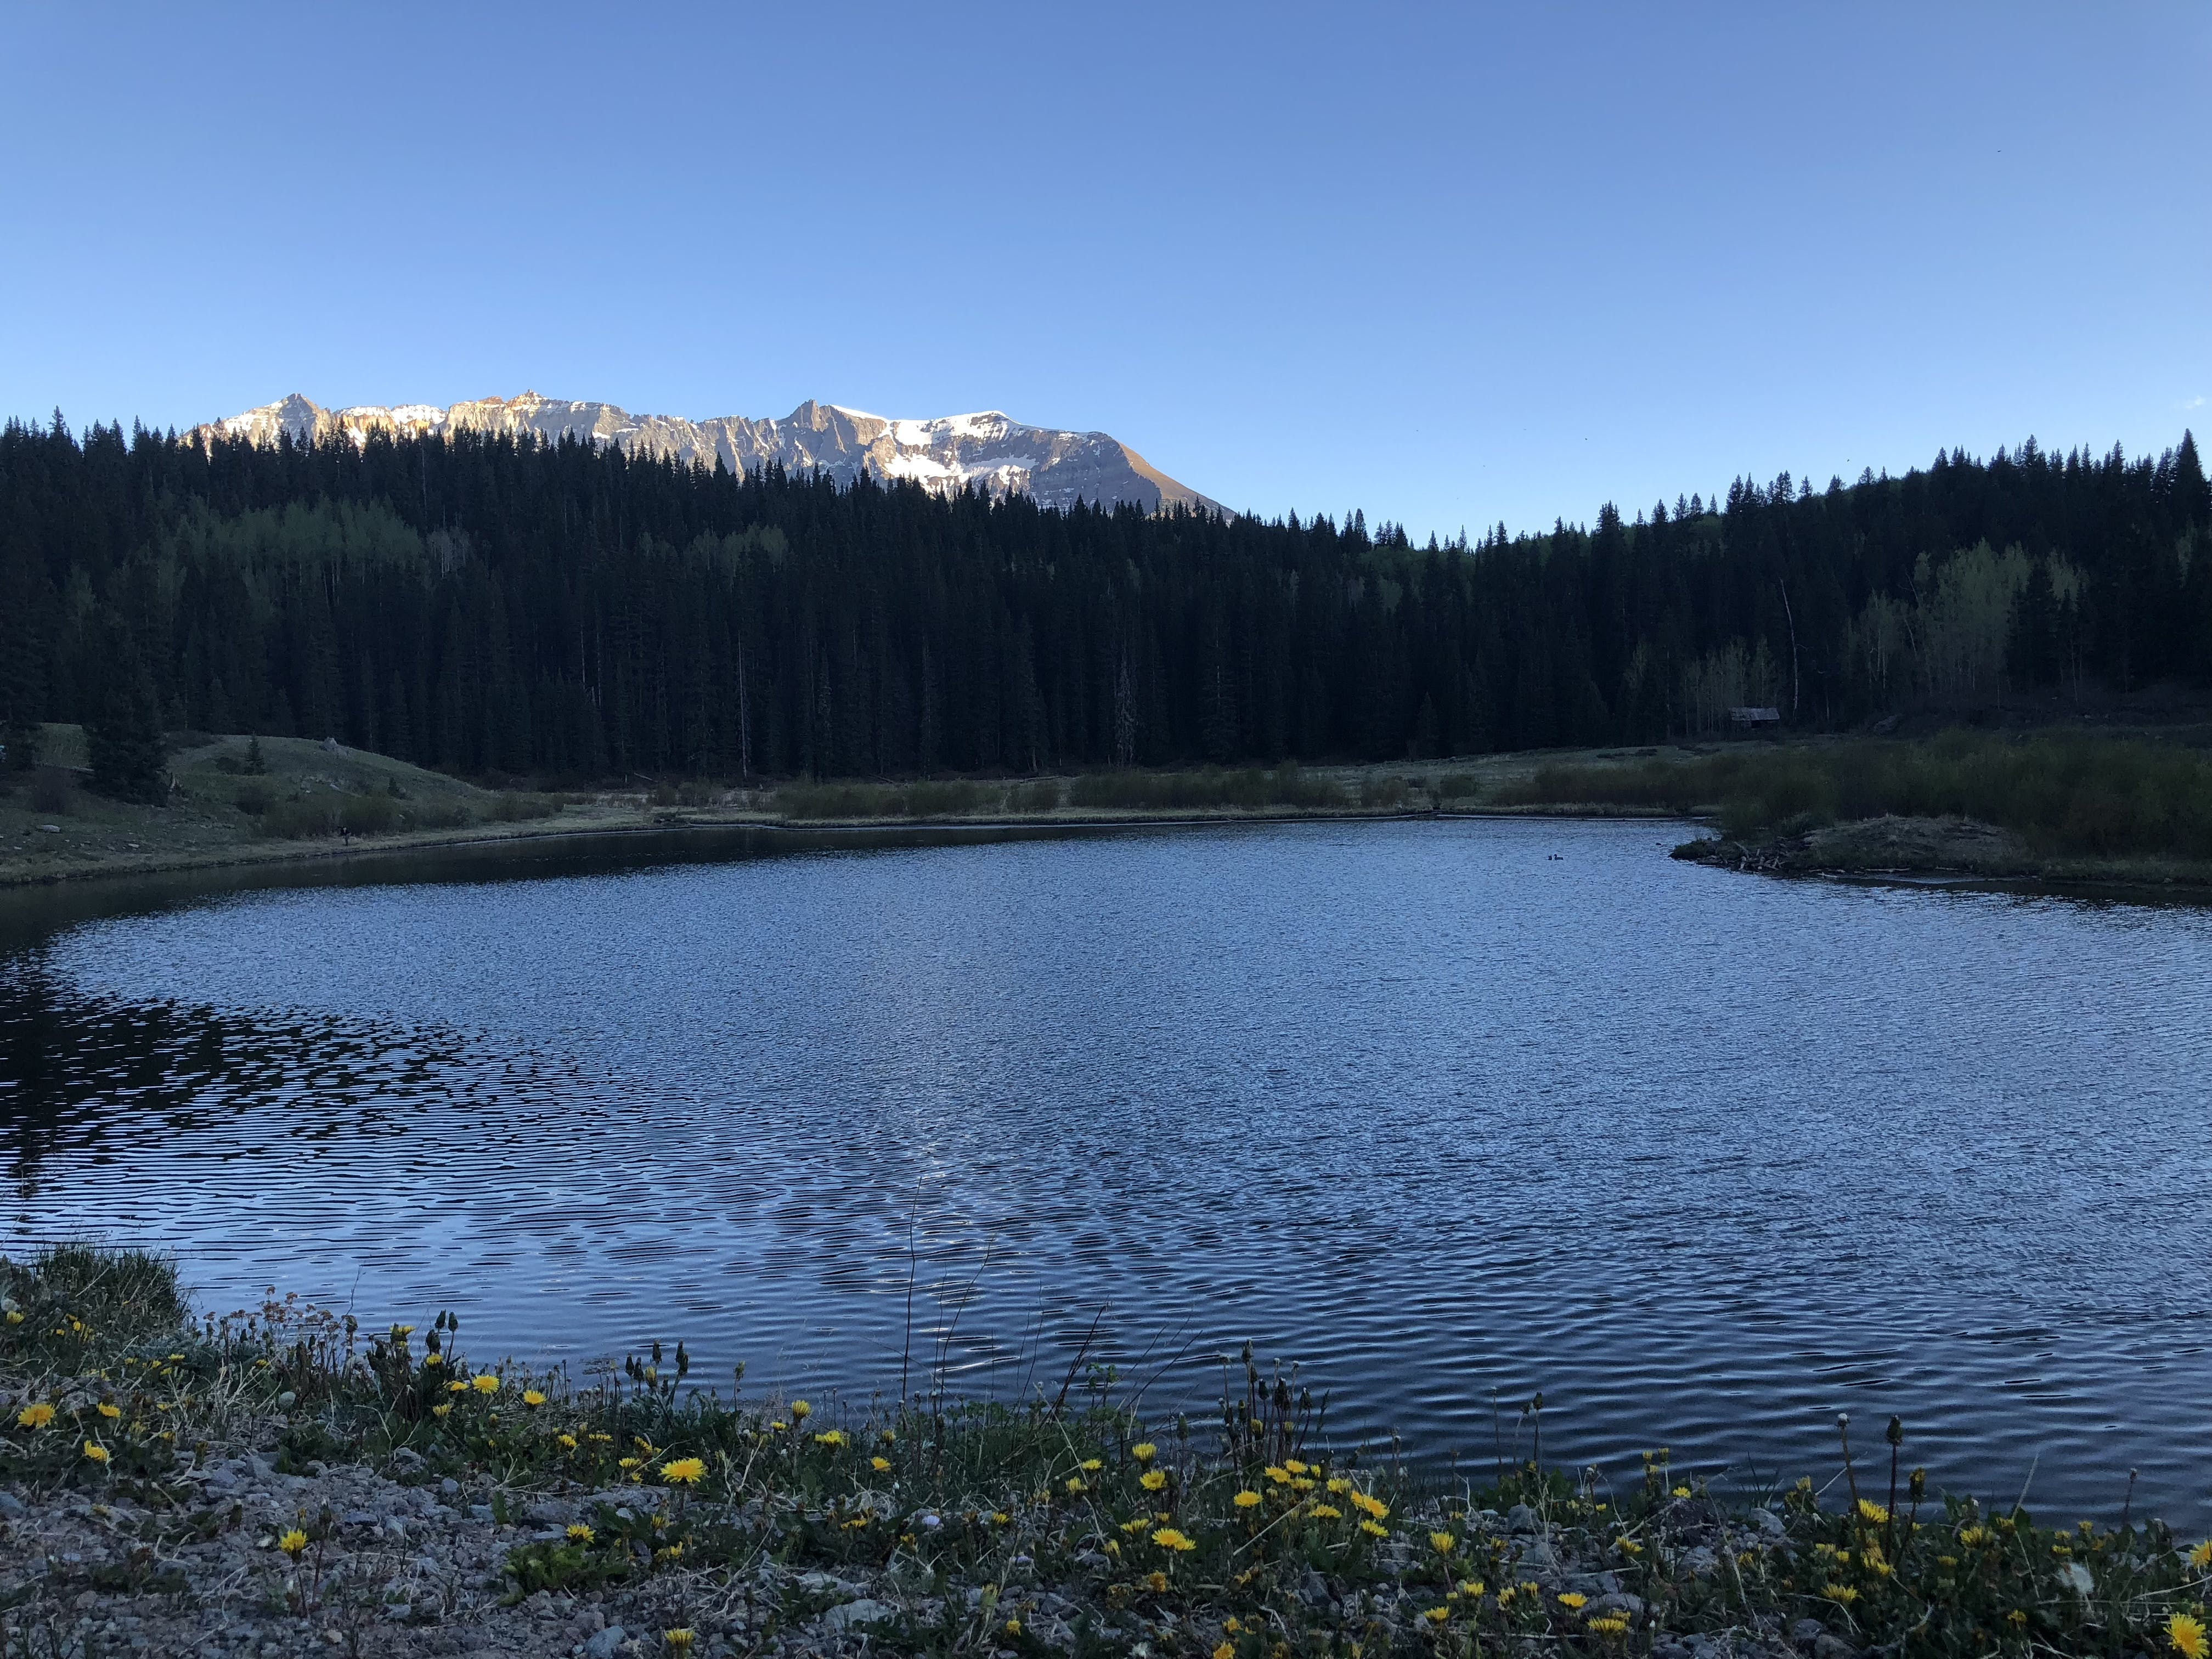 Priest Lake Dispersed Camping Area - Norwood Rd, CO | The Dyrt